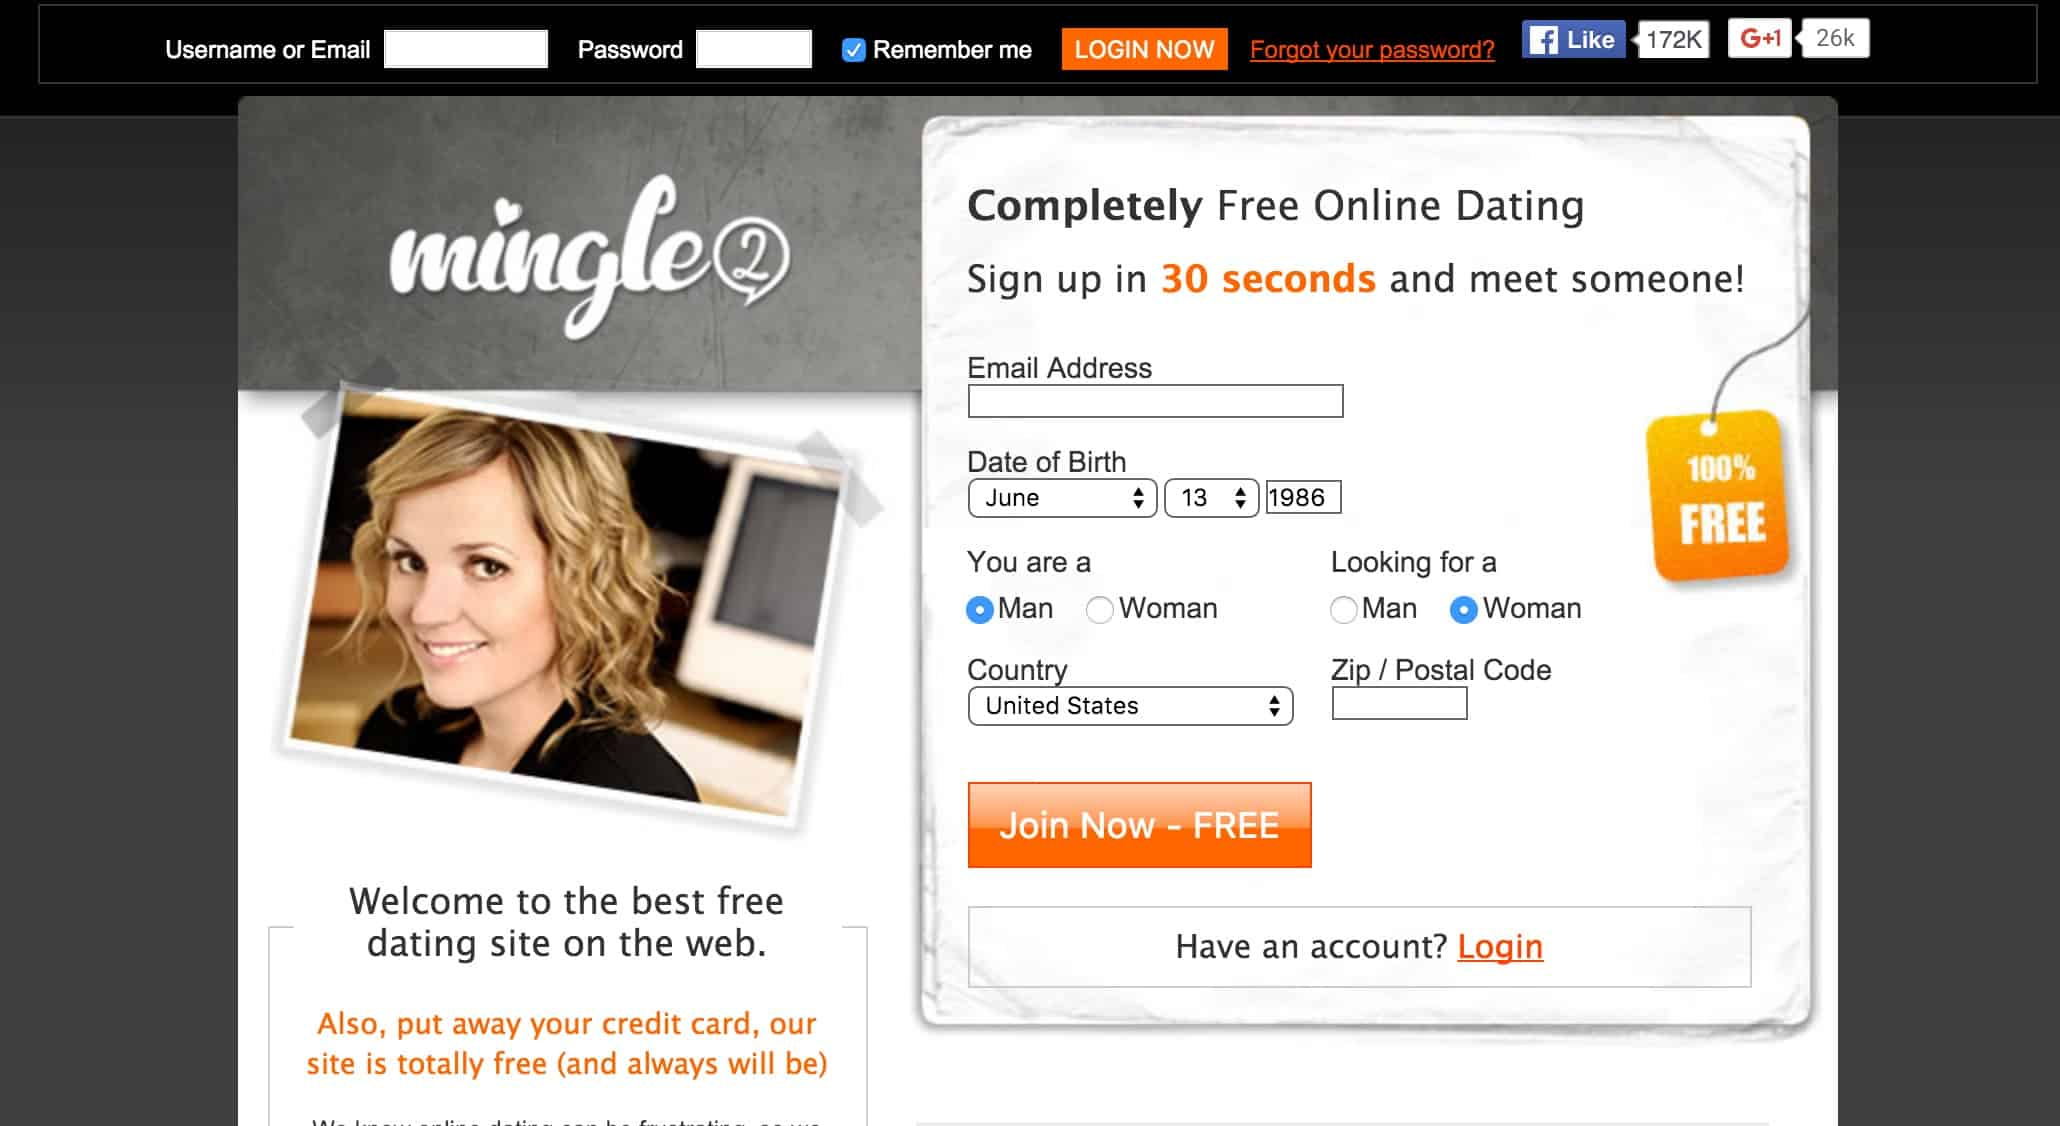 The best dating site in the Netherlands